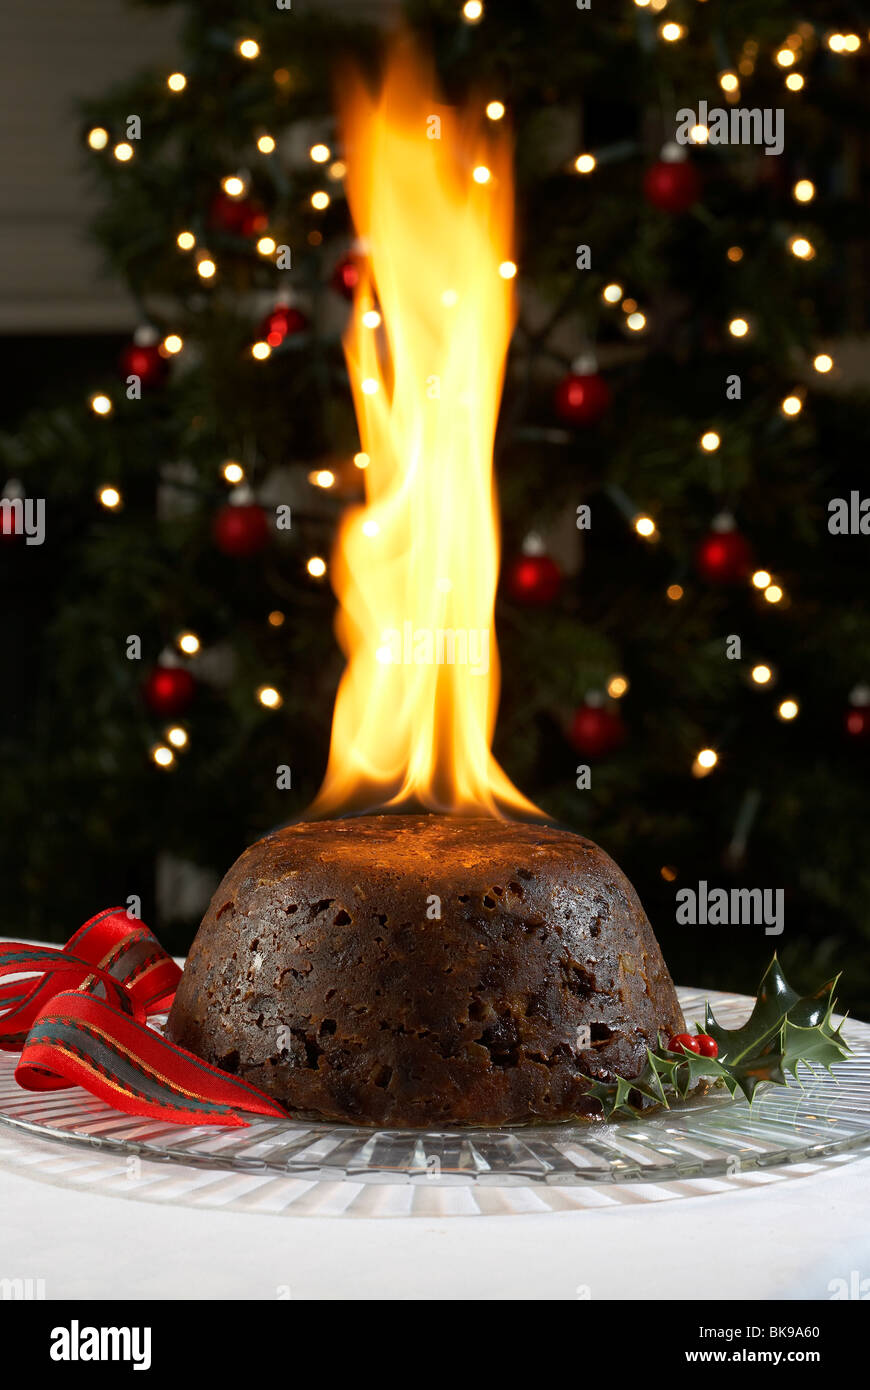 Christmas Pudding On Fire.Christmas Pudding Flame Stock Photos Christmas Pudding